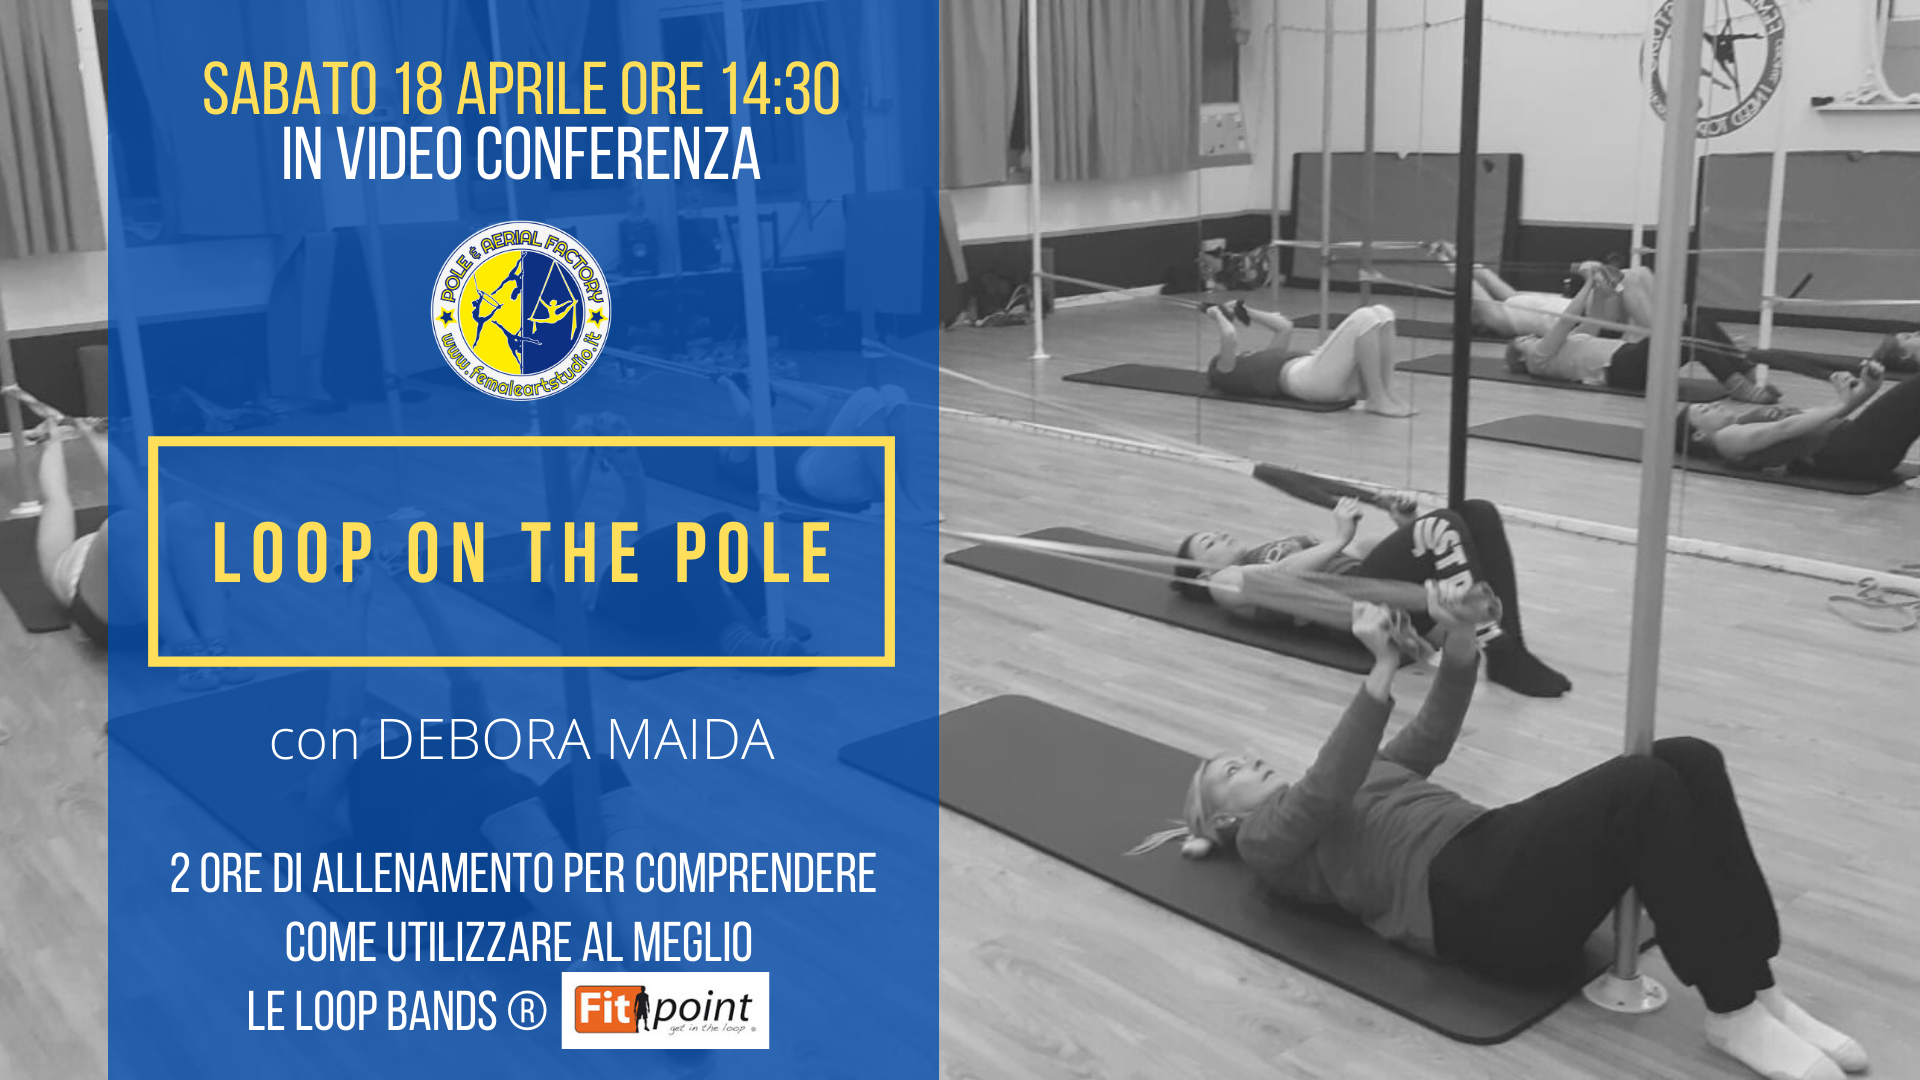 LOOP on the POLE con Debora Maida